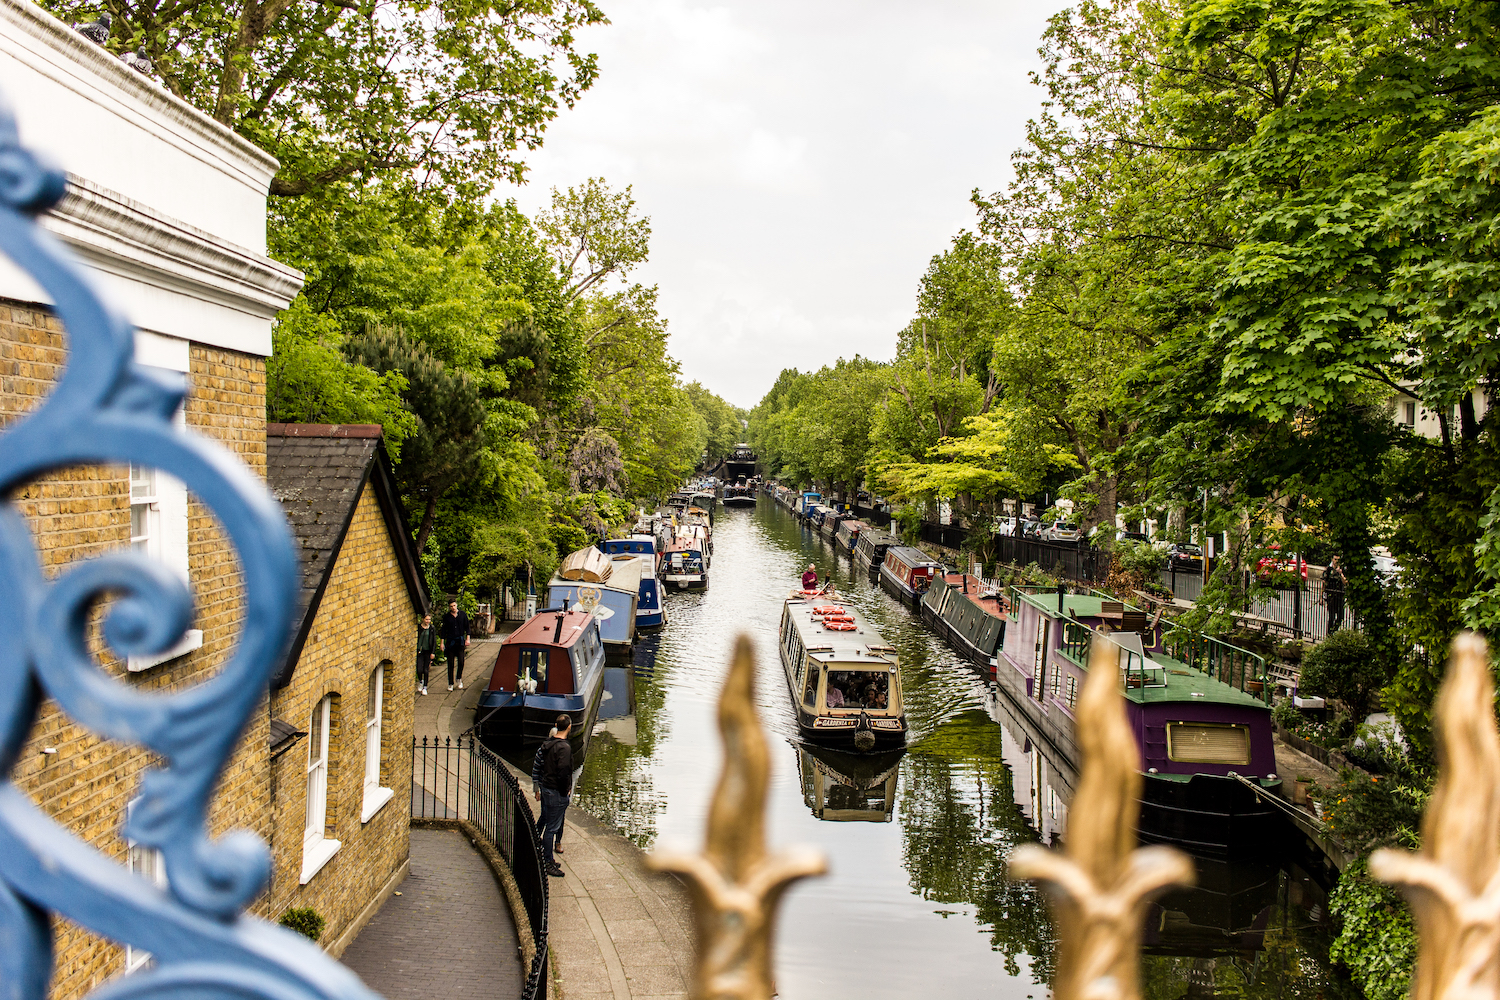 Professional Photography Landscape Of Little Venice Paddington West London With Canal Boats And Green Trees